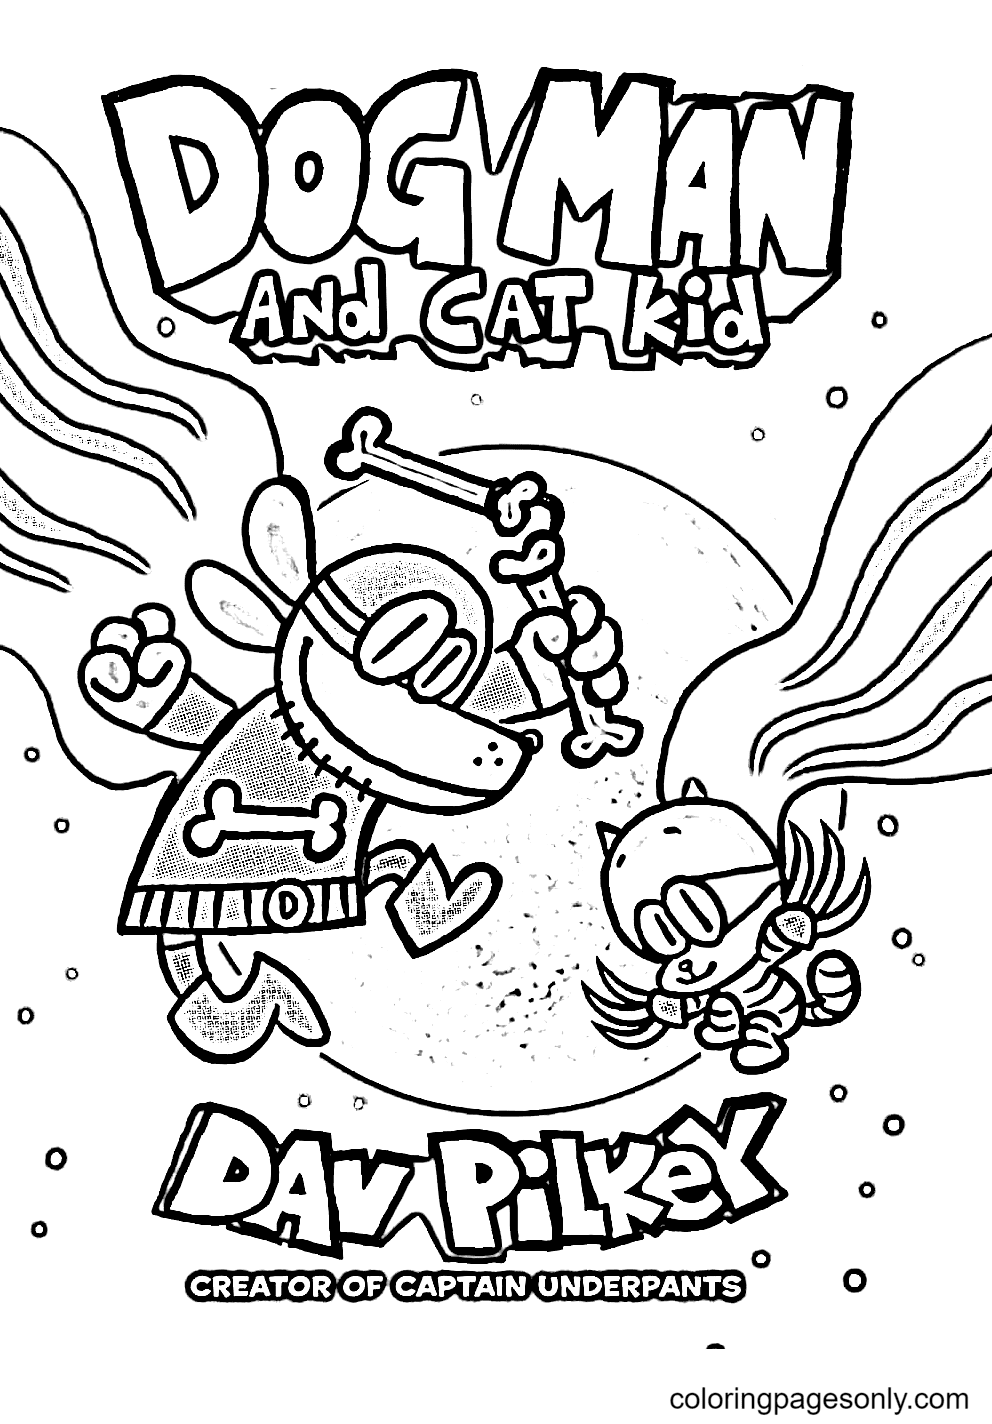 Dog Man with Cat Kid Coloring Page